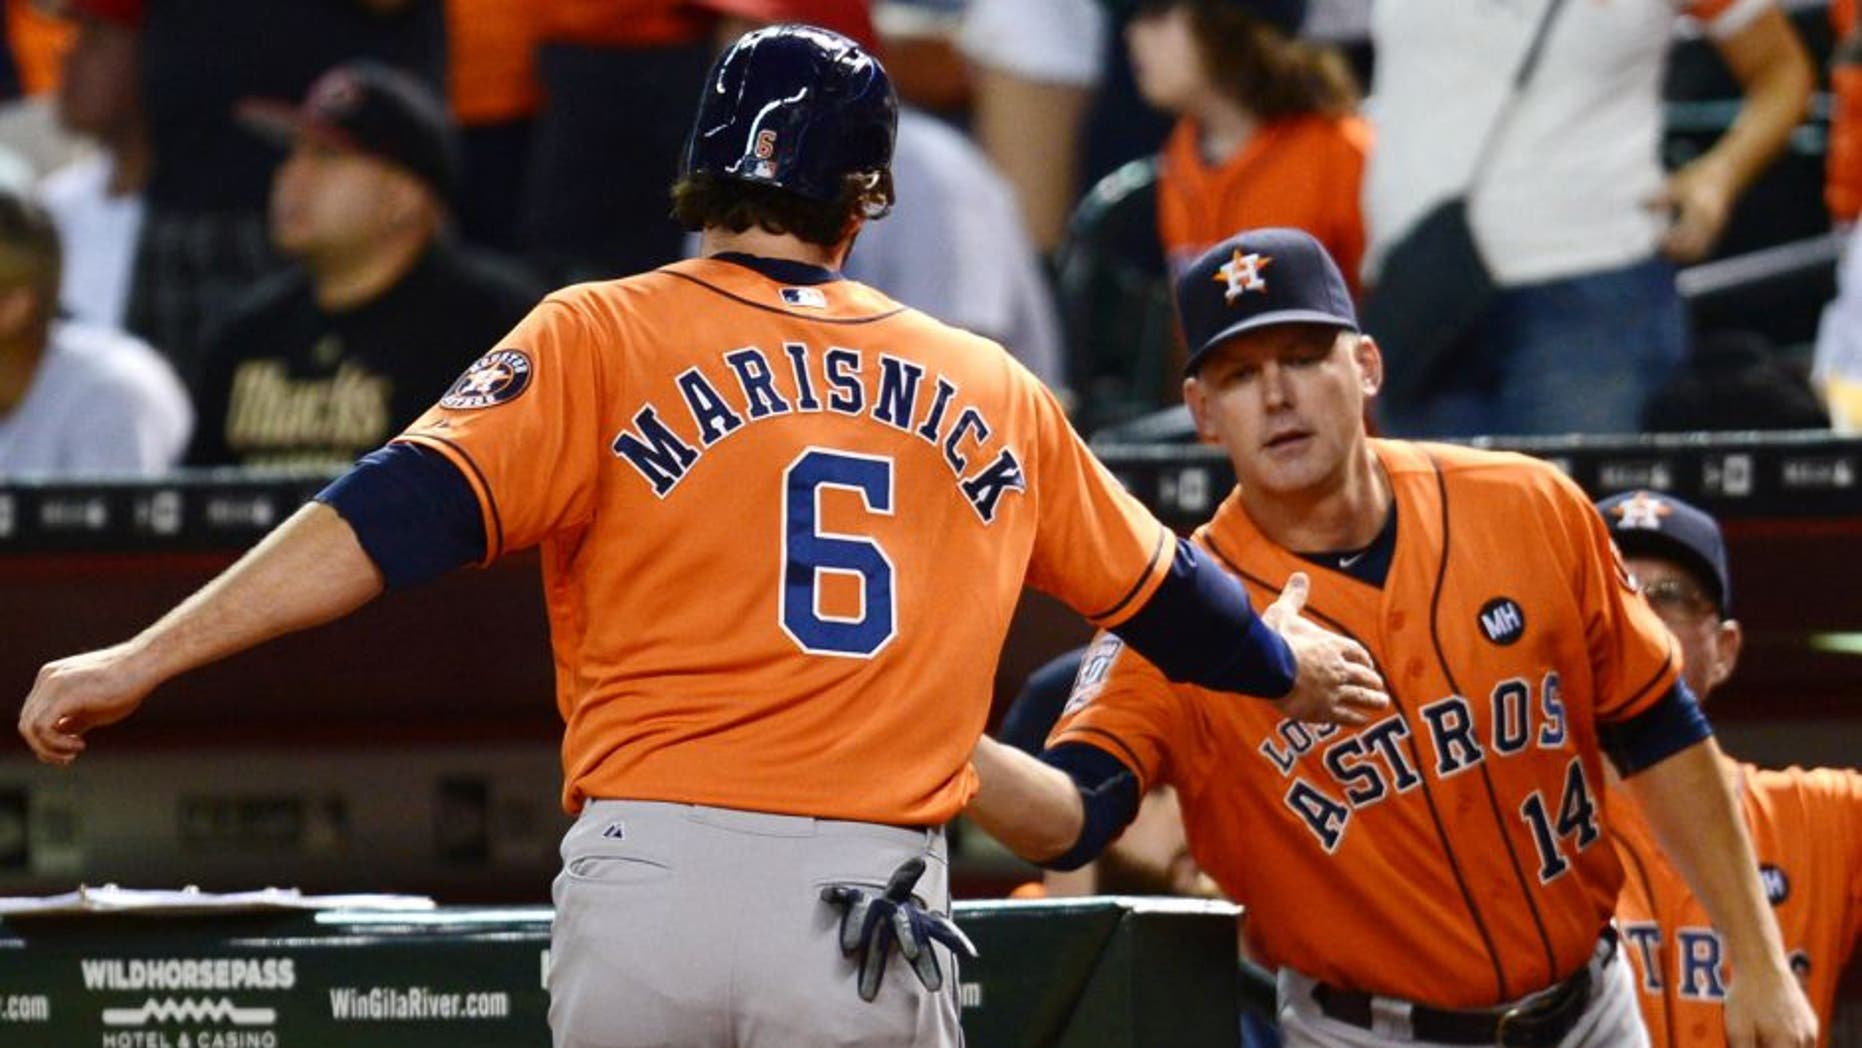 Oct 3, 2015; Phoenix, AZ, USA; Houston Astros center fielder Jake Marisnick (6) slaps hands with Houston Astros manager A.J. Hinch (14) after scoring a run in the seventh inning against the Arizona Diamondbacks at Chase Field. Mandatory Credit: Joe Camporeale-USA TODAY Sports